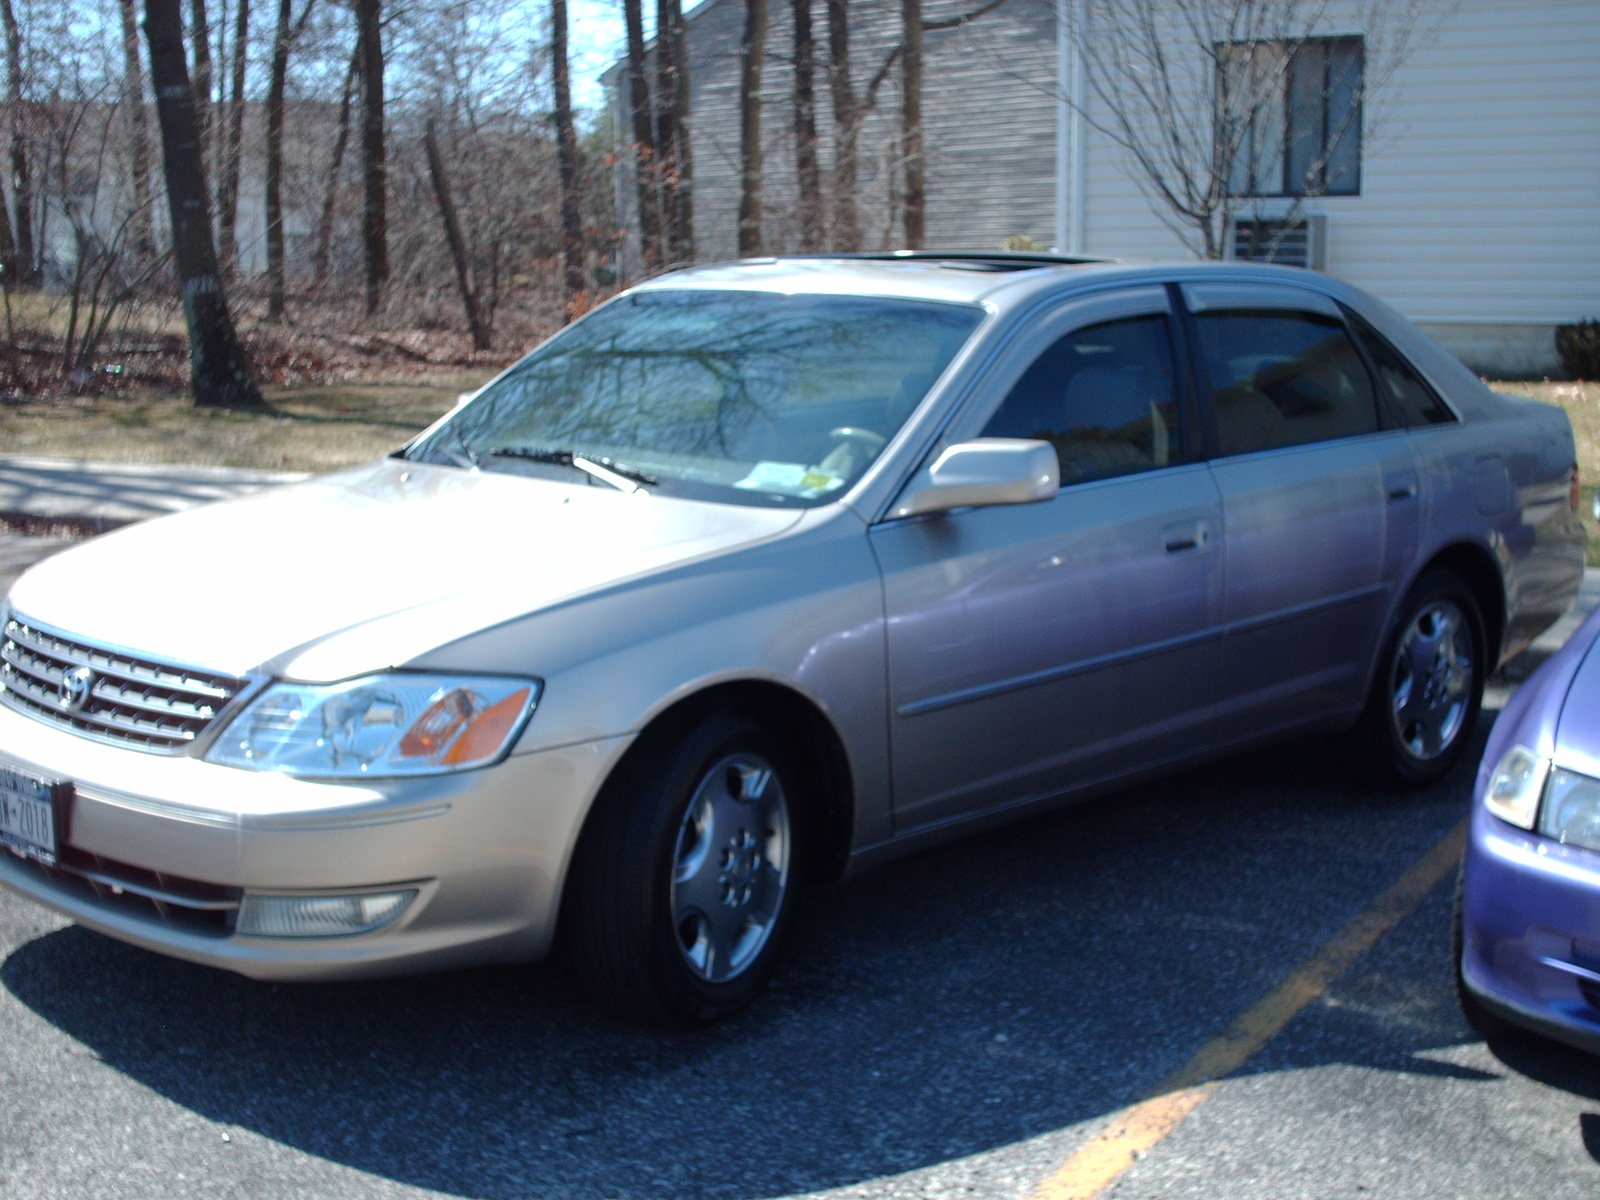 2004 Toyota Avalon - Pictures